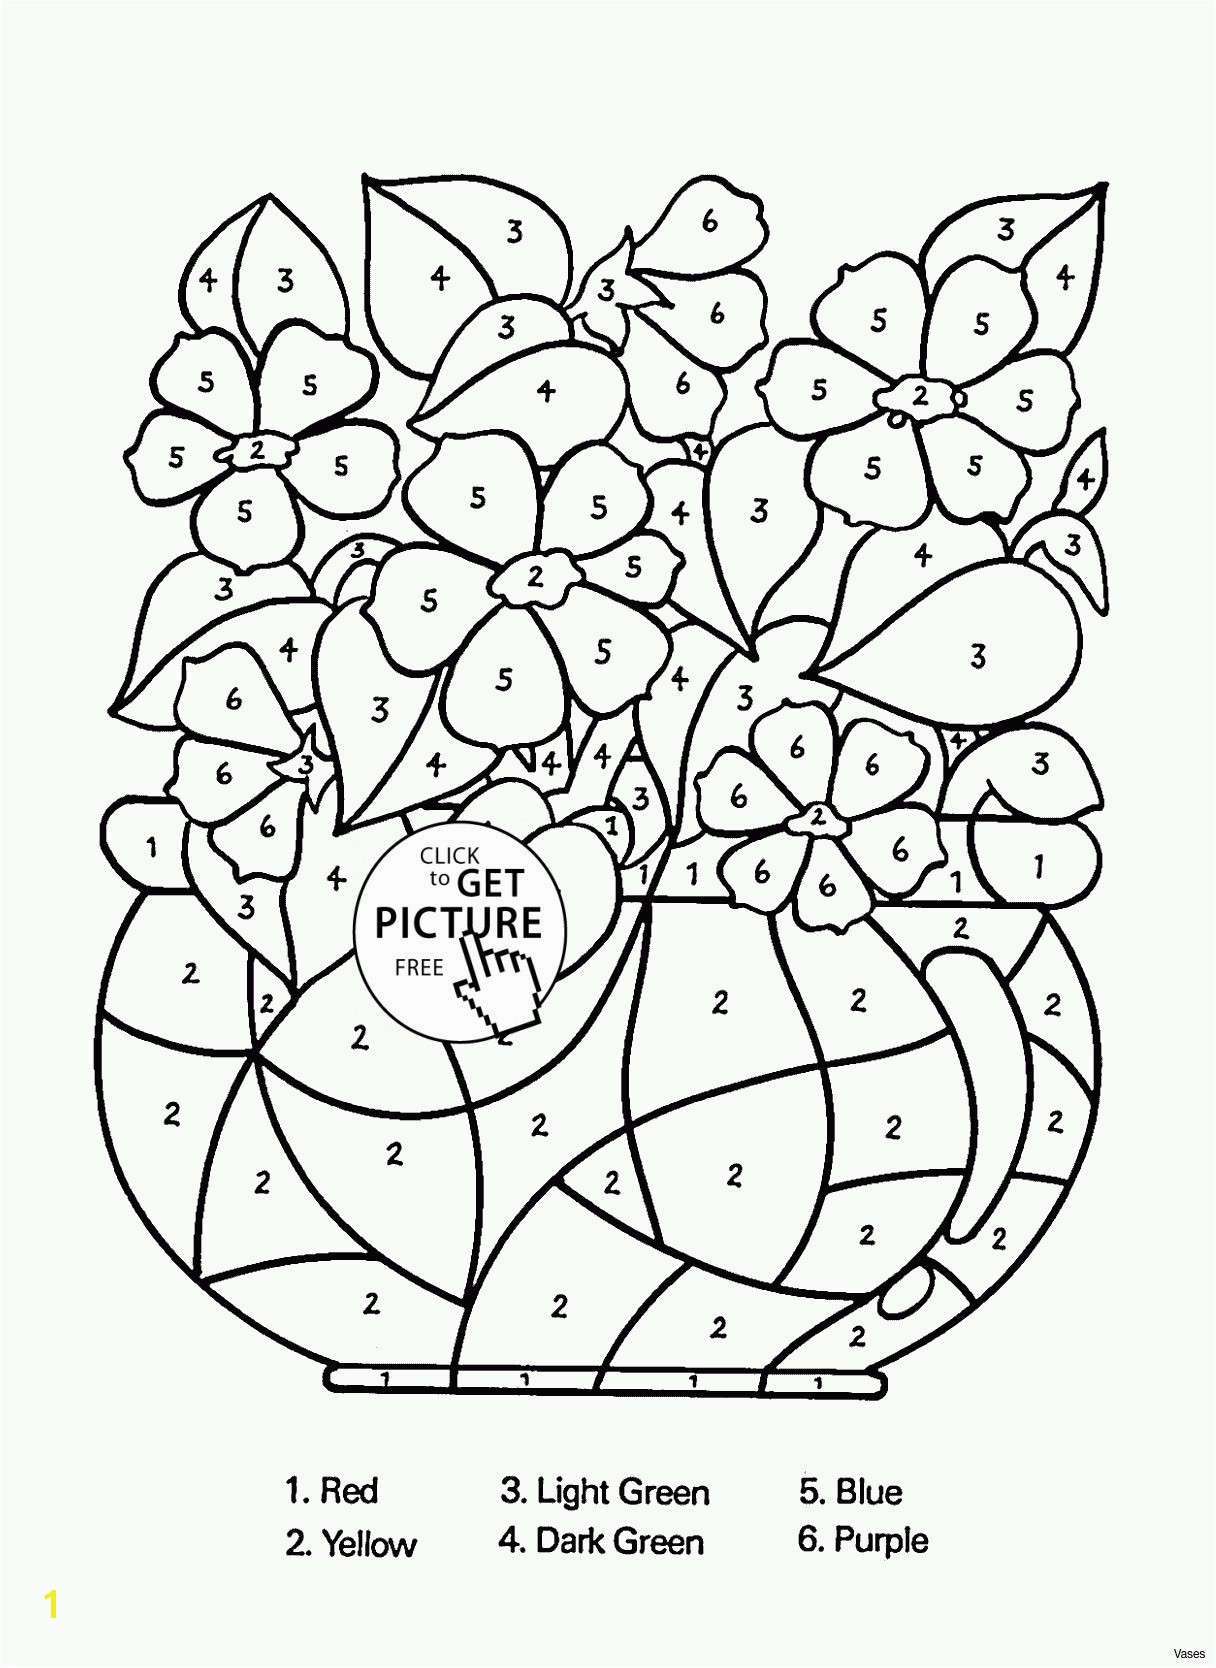 Preschool Worksheet Best Coloring Pages for Kids Printable Beautiful Coloring Printables 0d